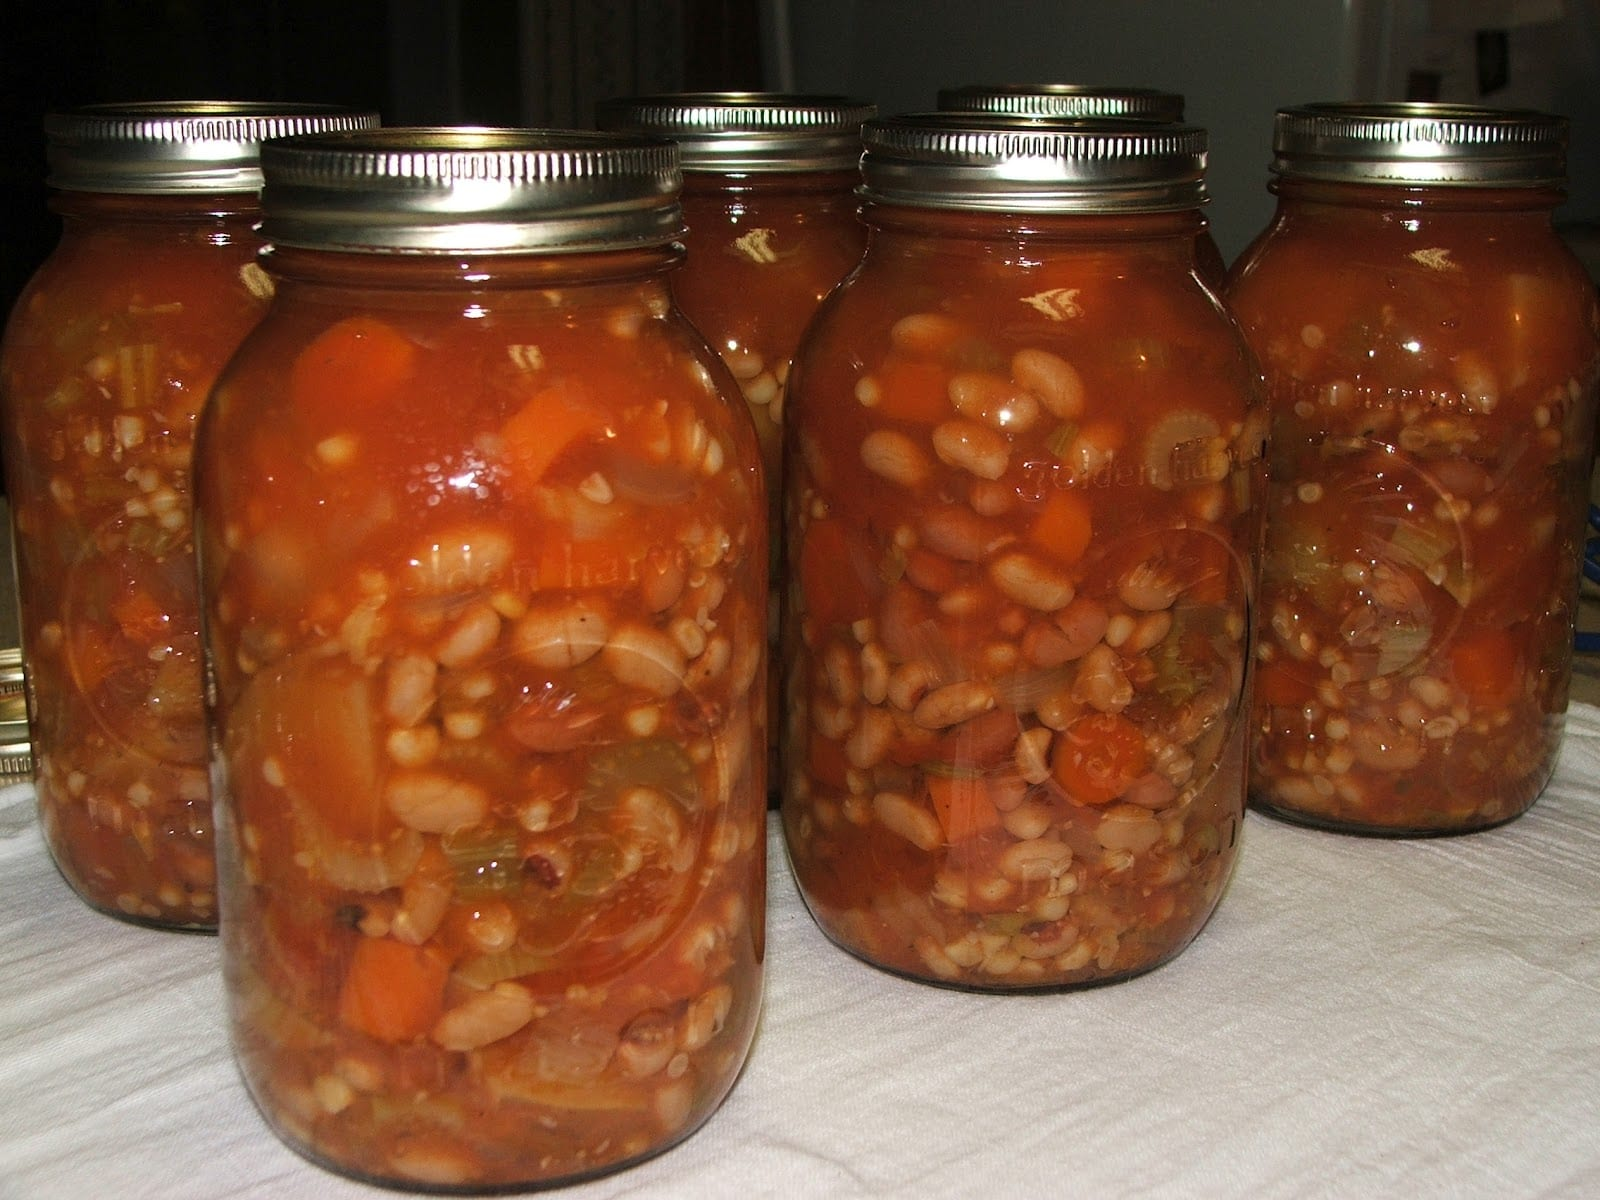 Botulism from home canning leads to recall of soup